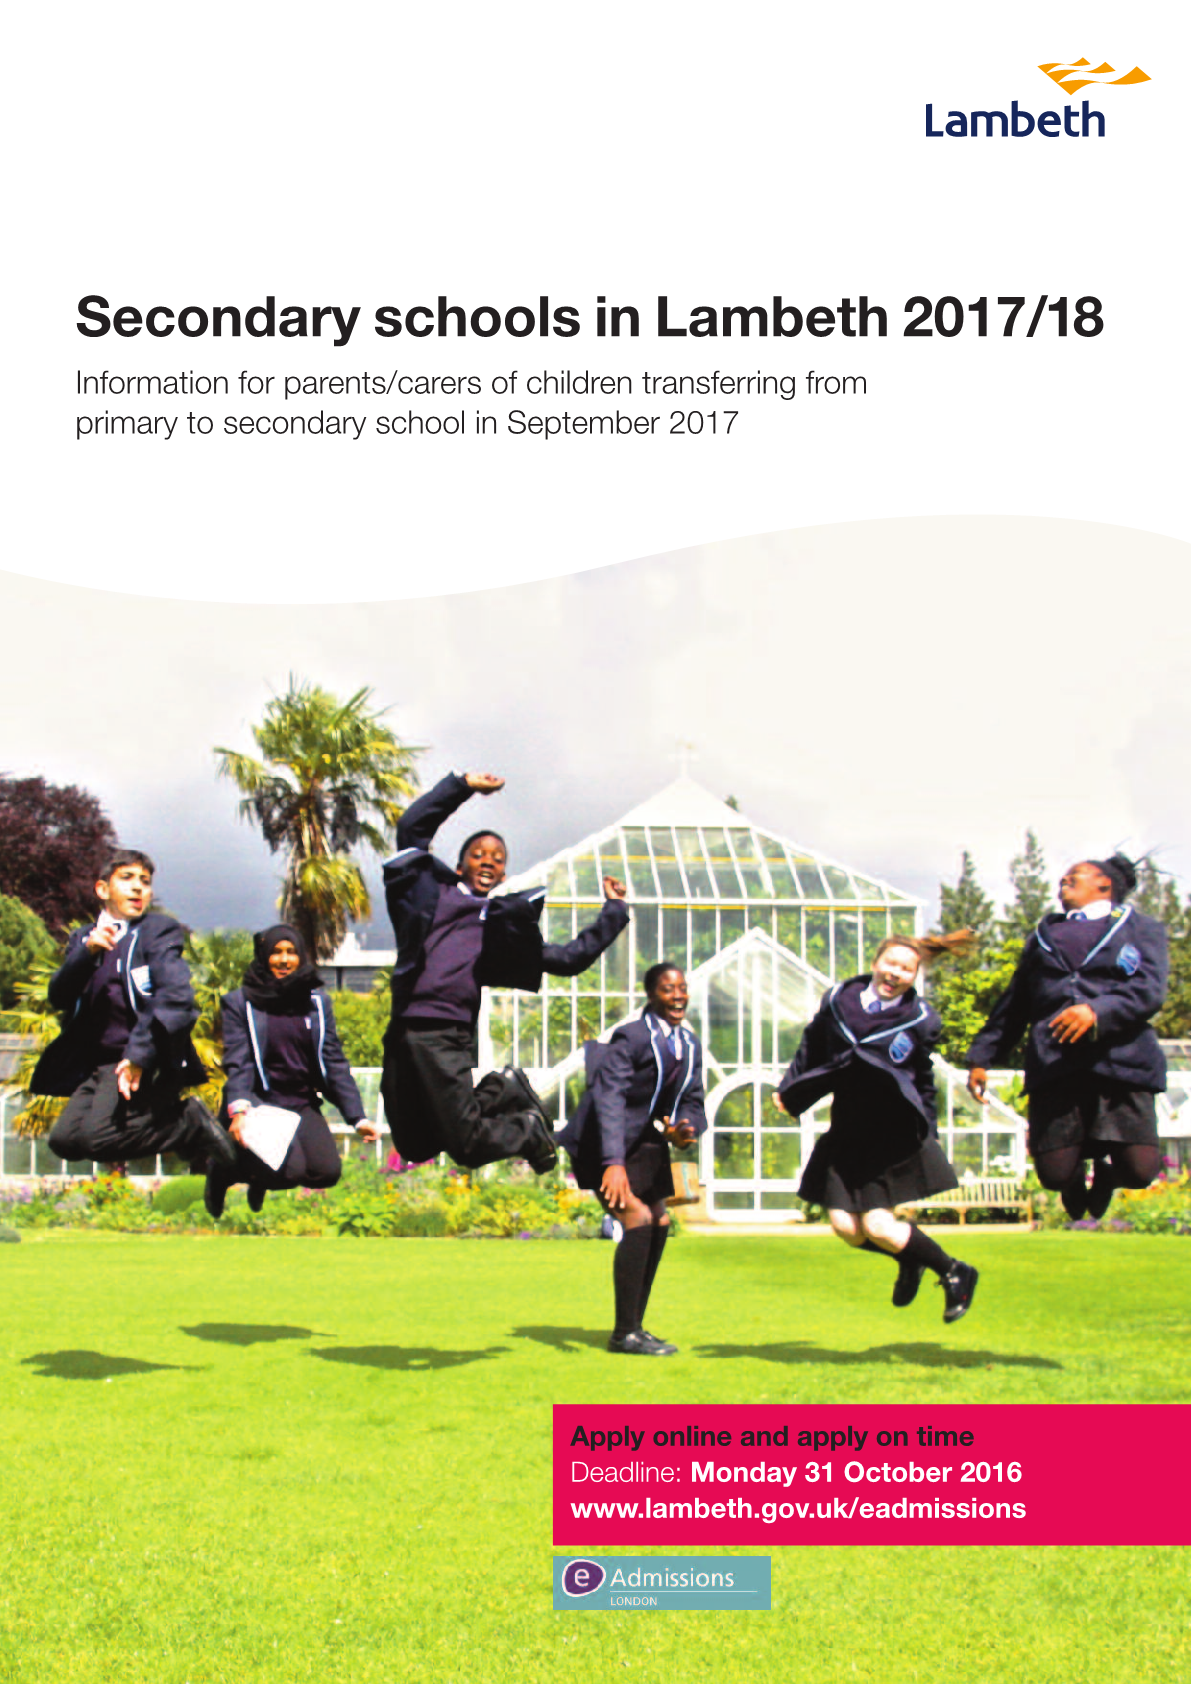 Lambeth - Secondary schools brochure 2017